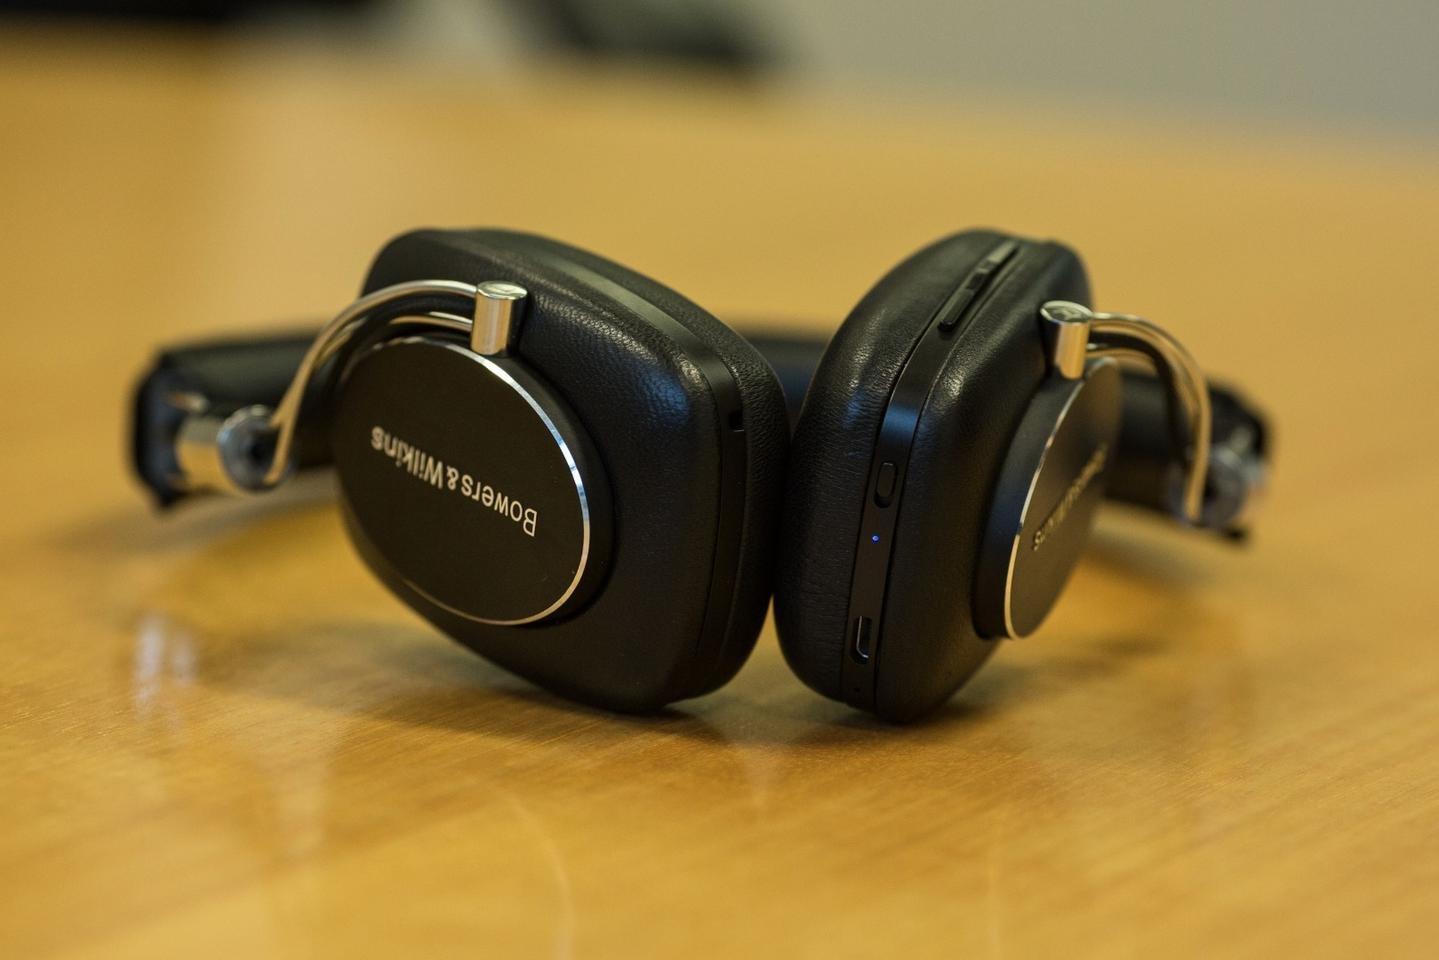 We've tested the P5 Wireless headphones with both aptX-supported phones and non-supported devices and noticed no discernible difference in sound quality, both are excellent